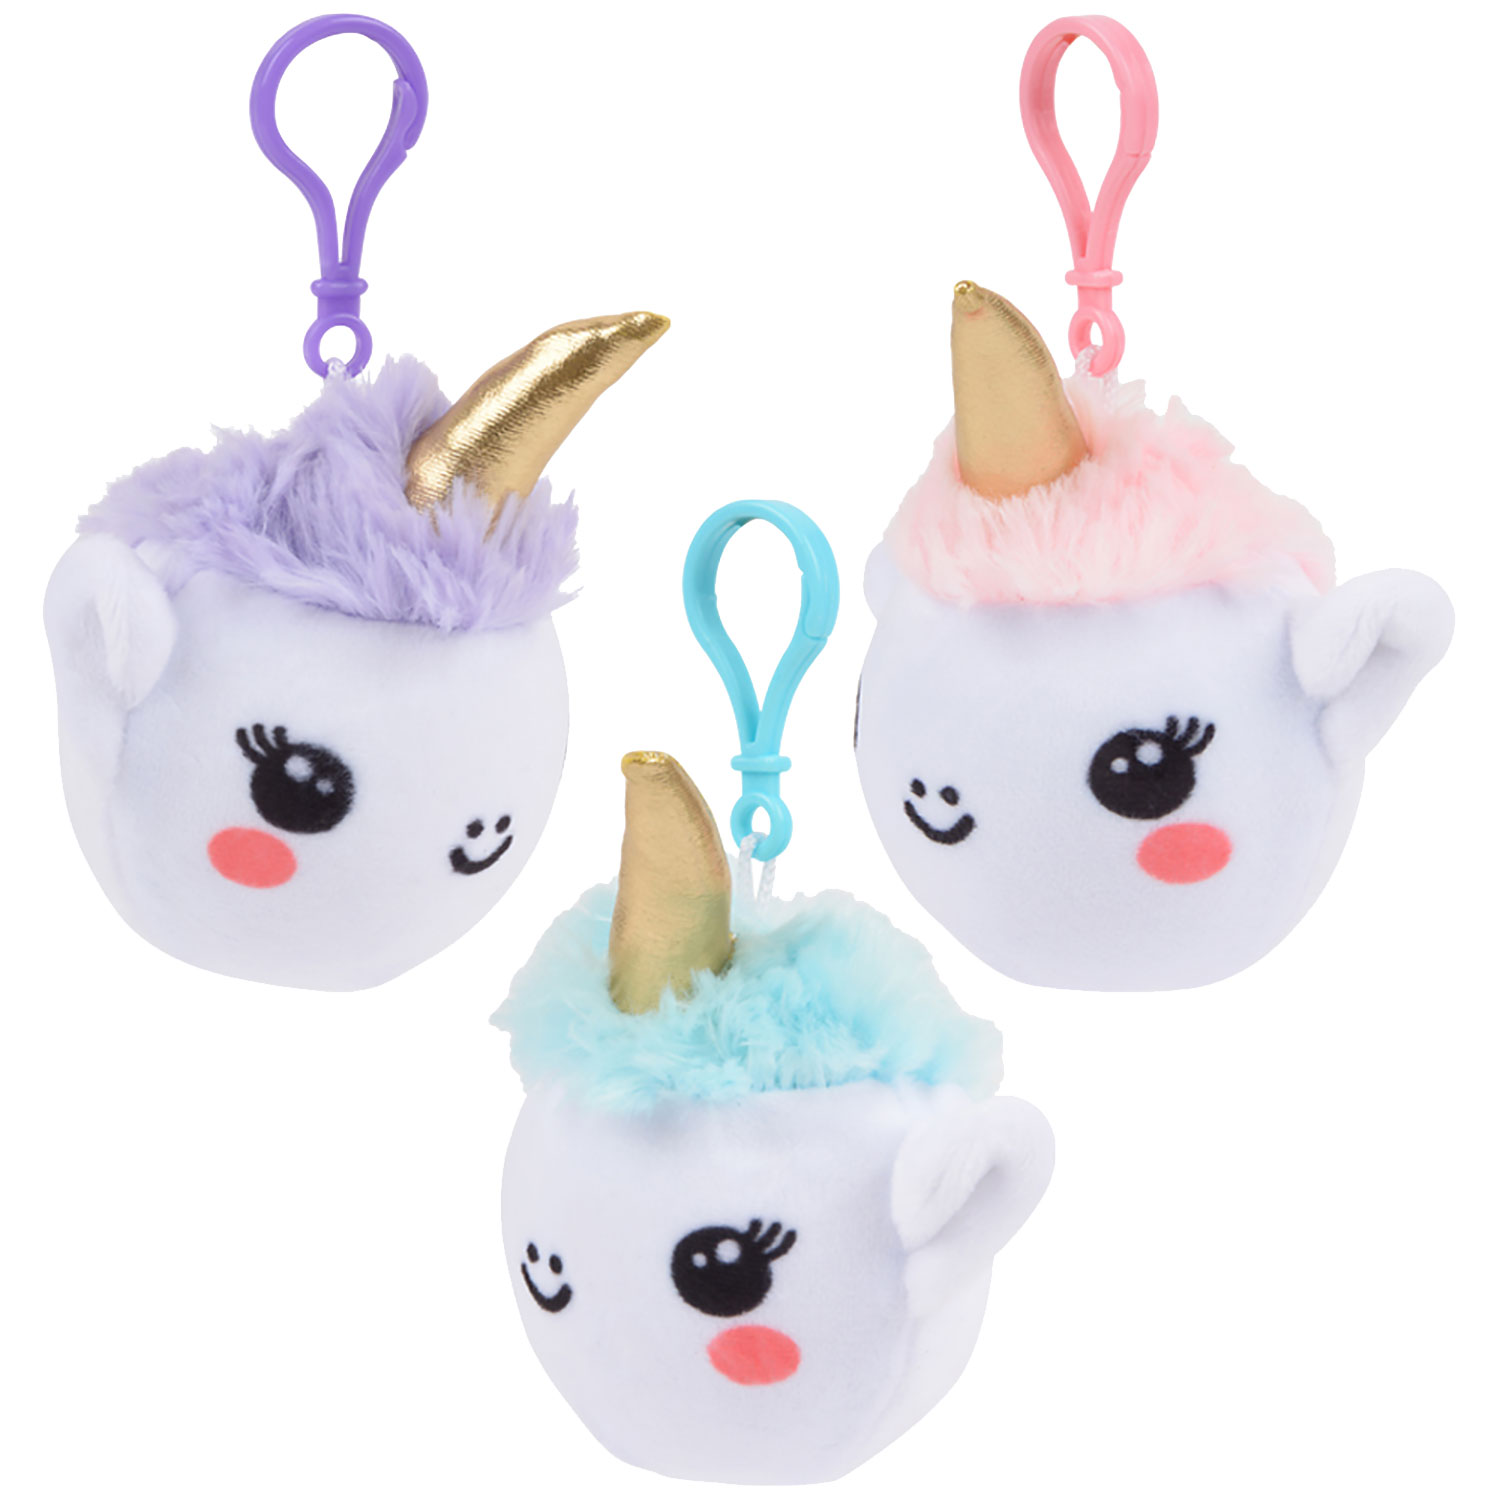 Plush Squishy Unicorn Clip On 4 Inch Assorted Colors